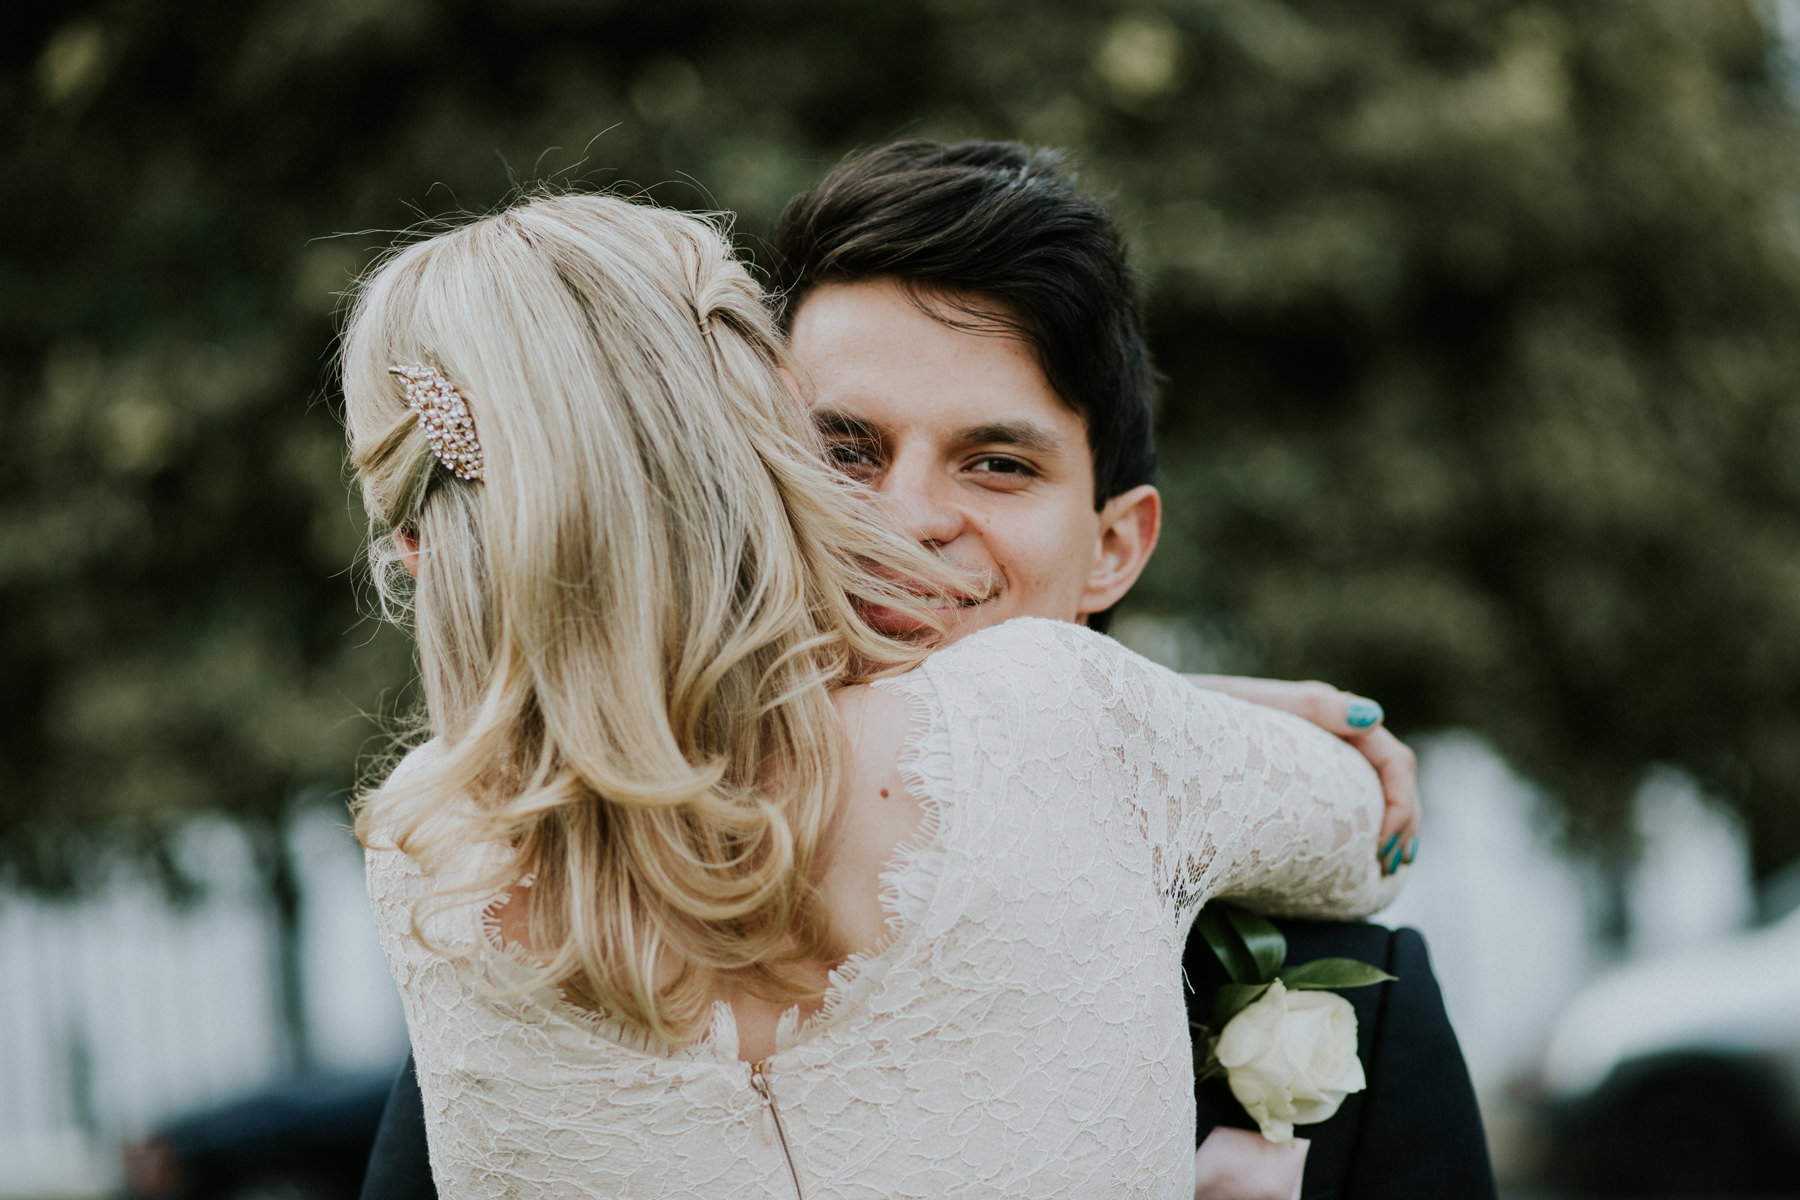 LD-494-bride-groom-hugging-during-couple-portraits-session-clapham-London-alternative-reportage-wedding-photographer.jpg